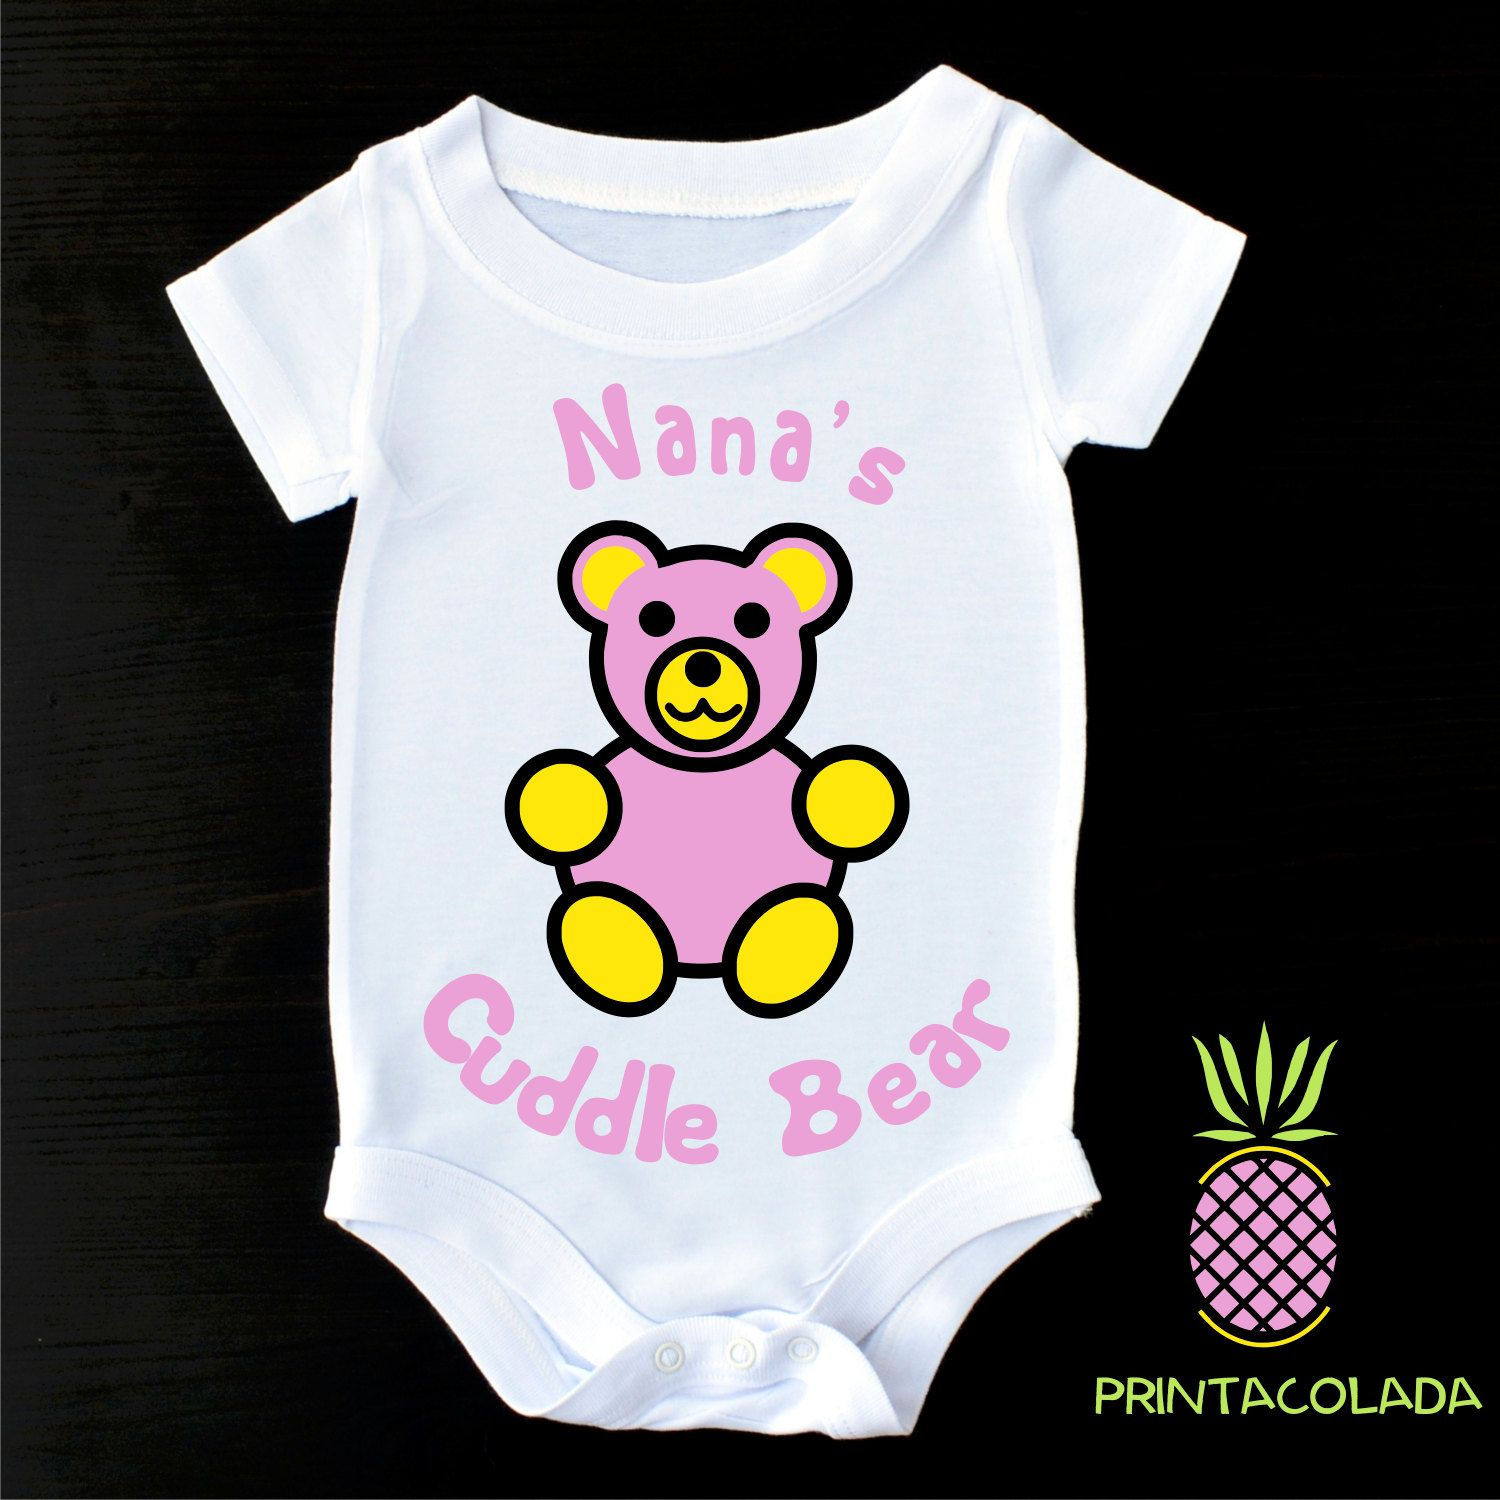 Cute Baby Clothes or Gerber esie Cute Baby esies Nana esie